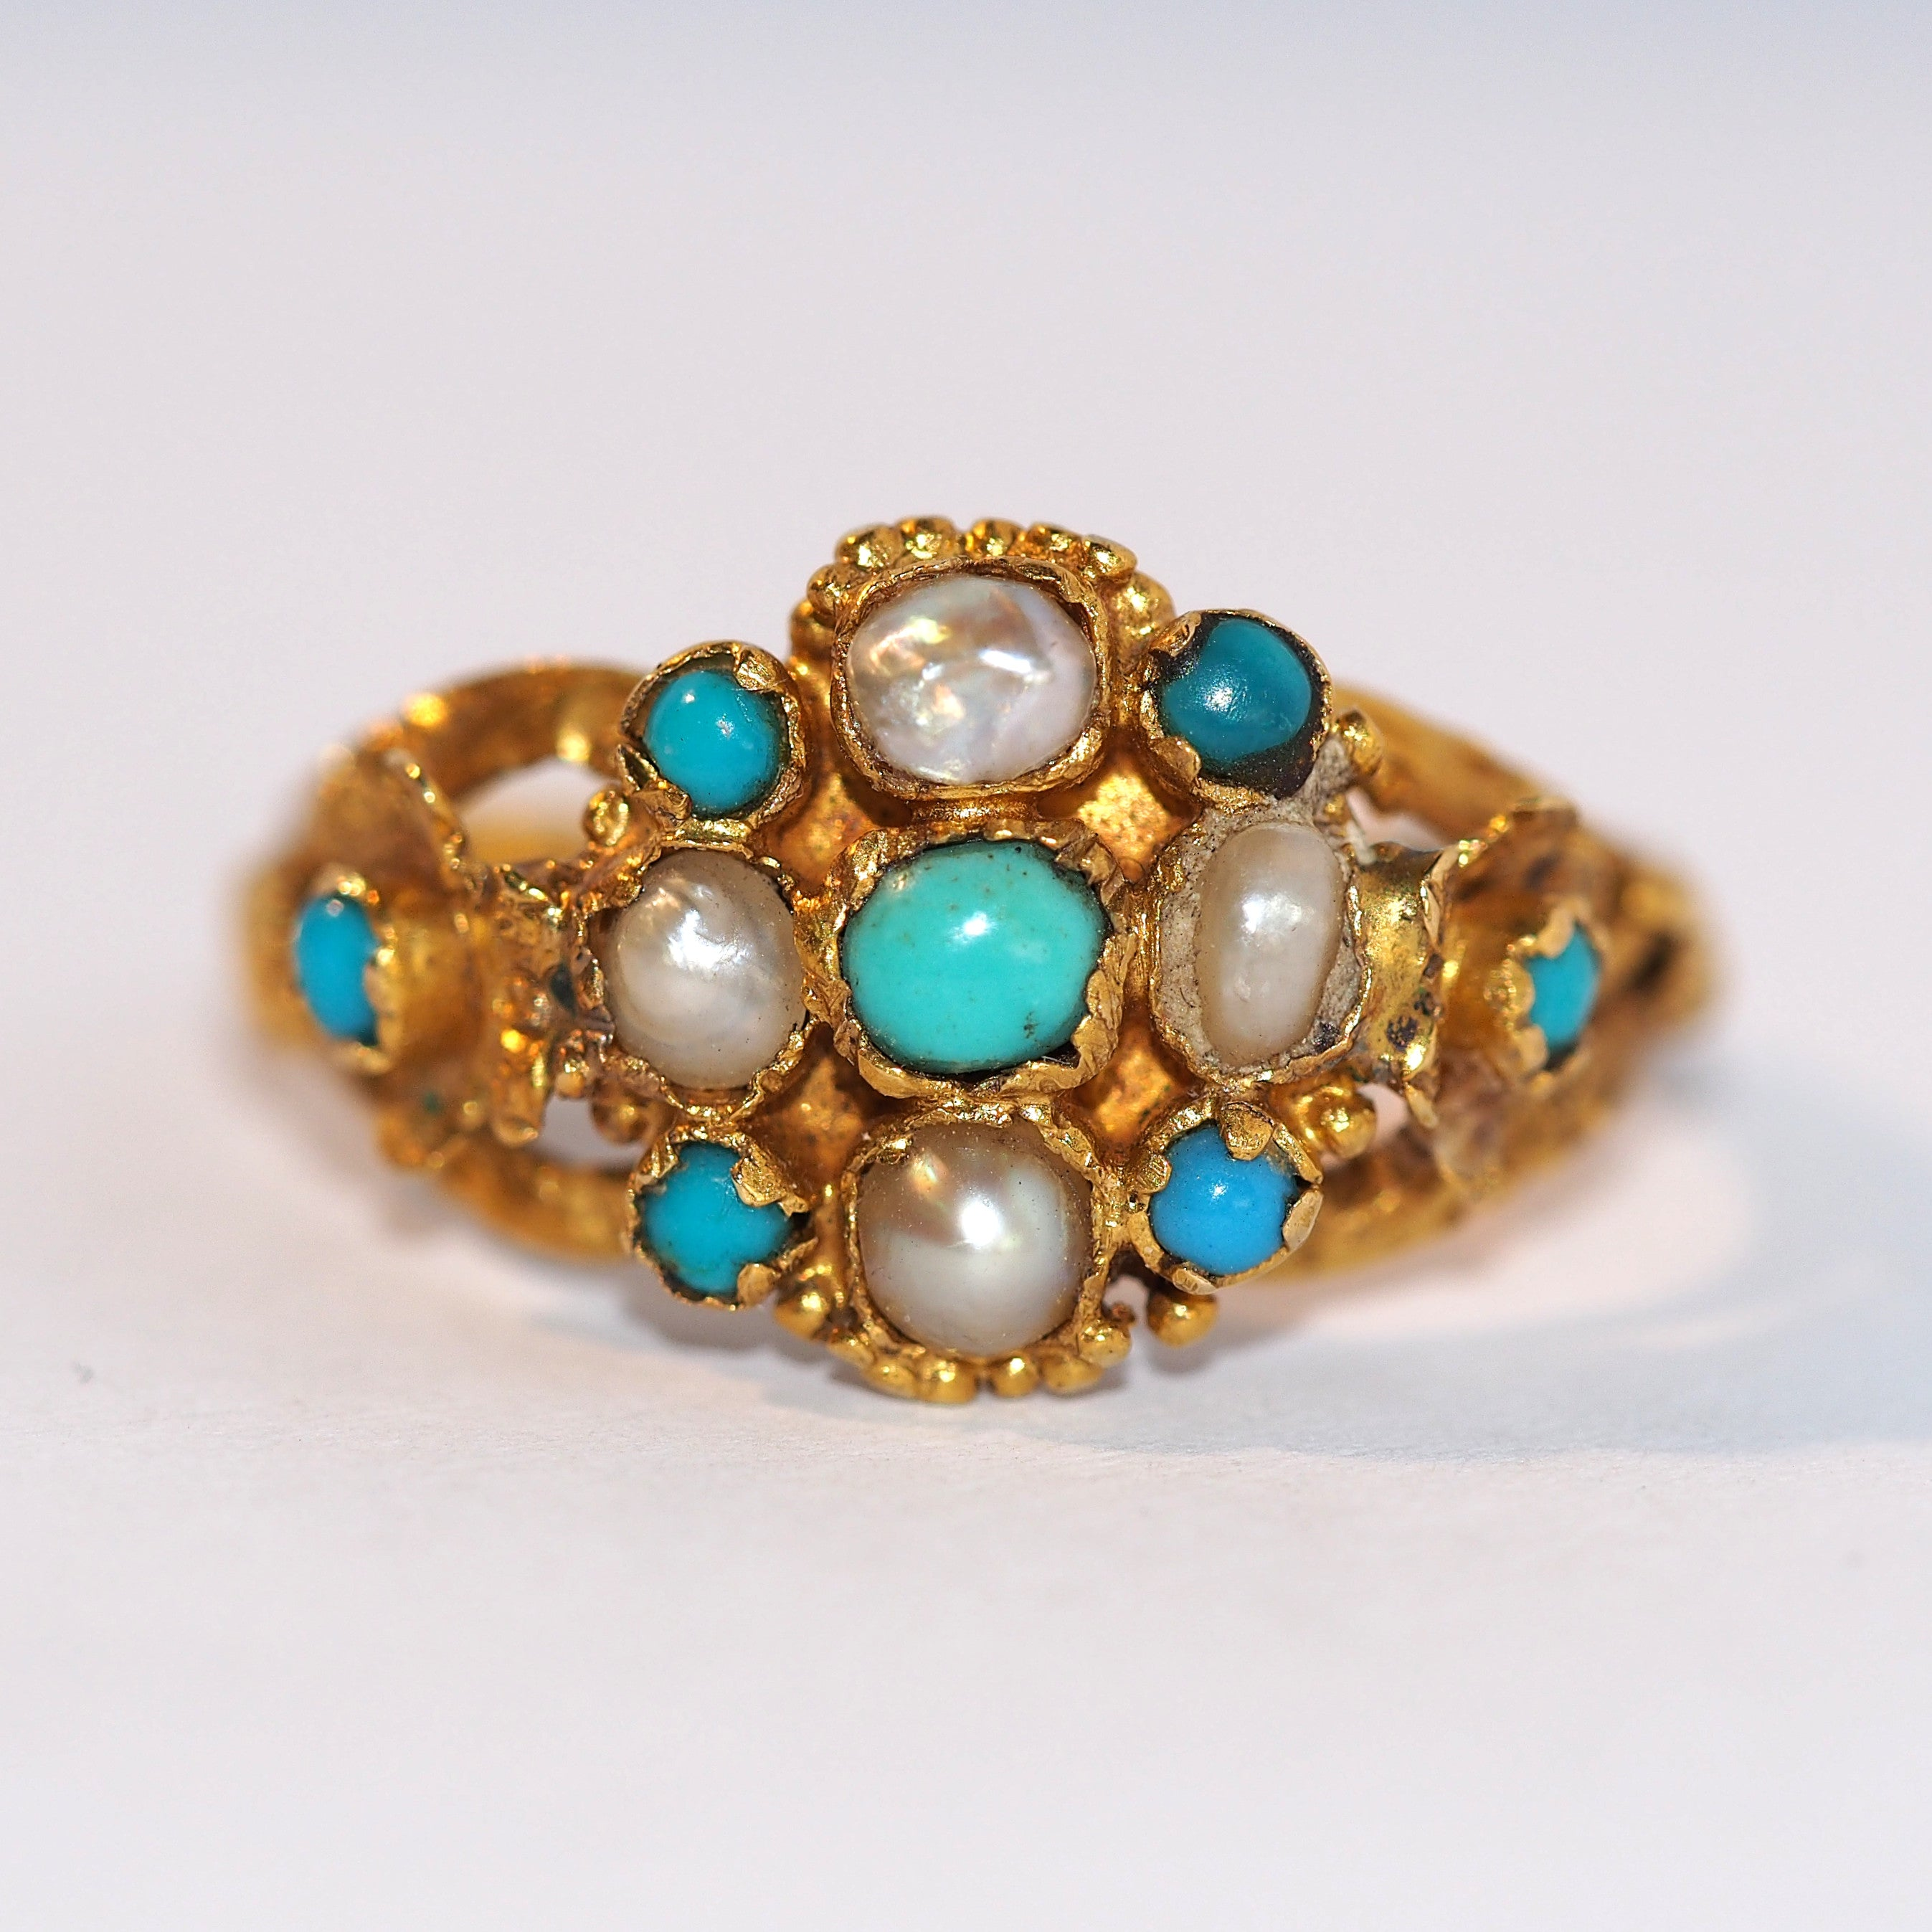 Turquoise and Pearl Antique Ring